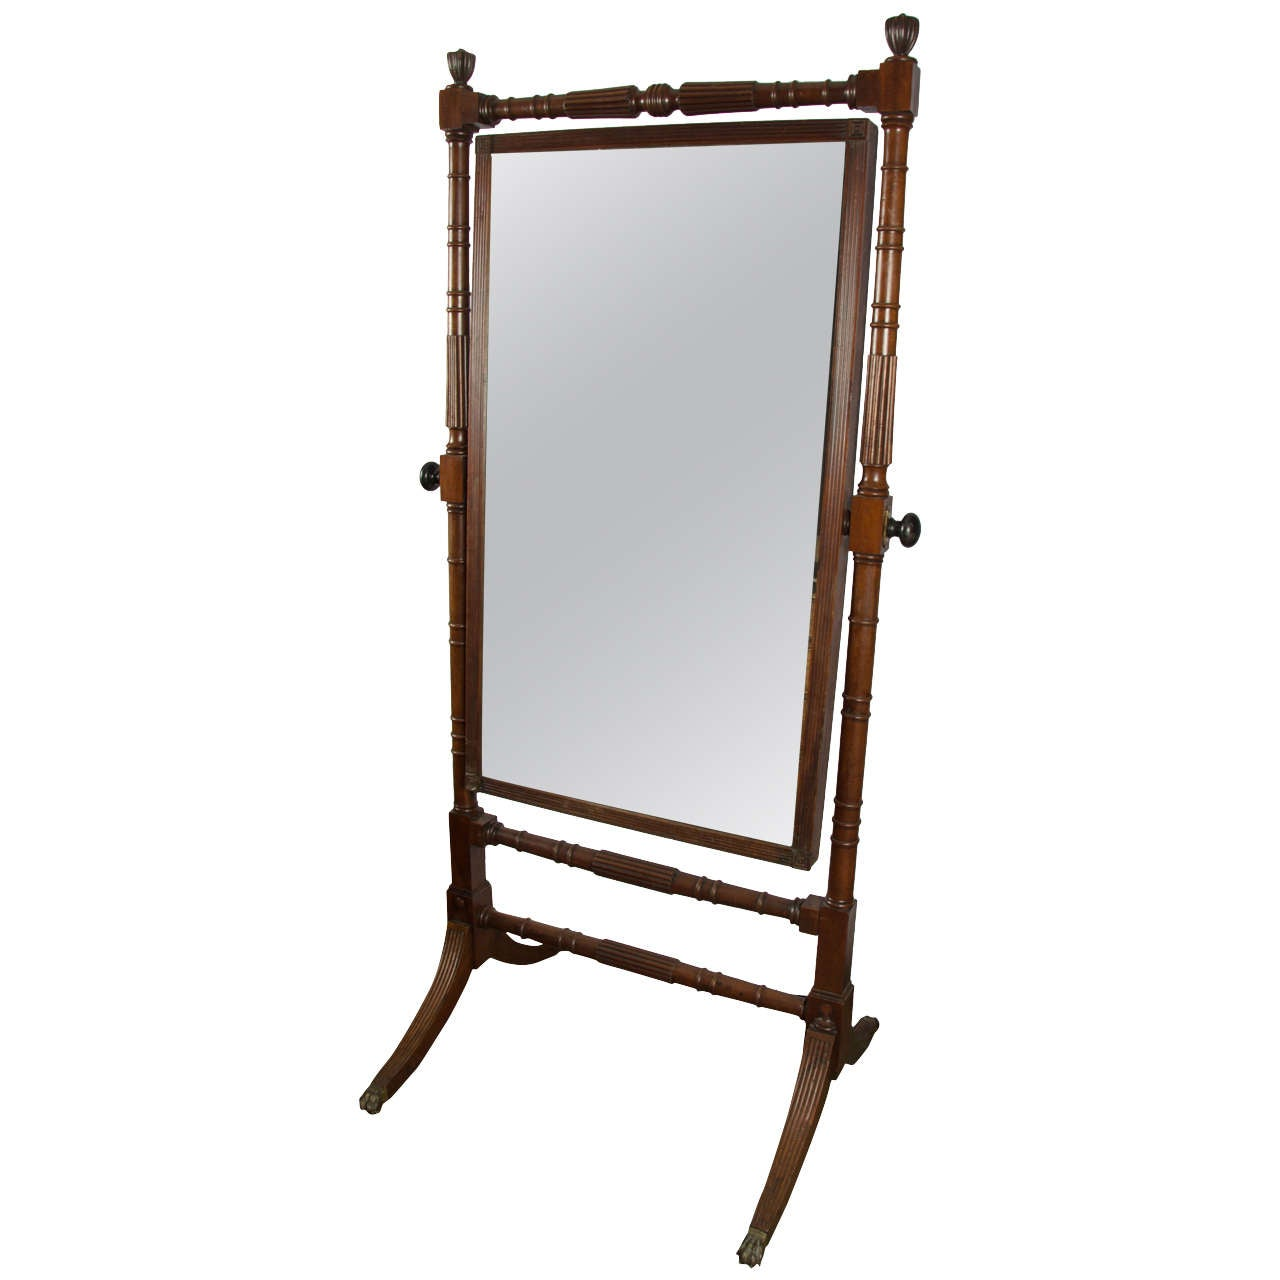 Regency mahogany cheval mirror at 1stdibs for Cheval mirror